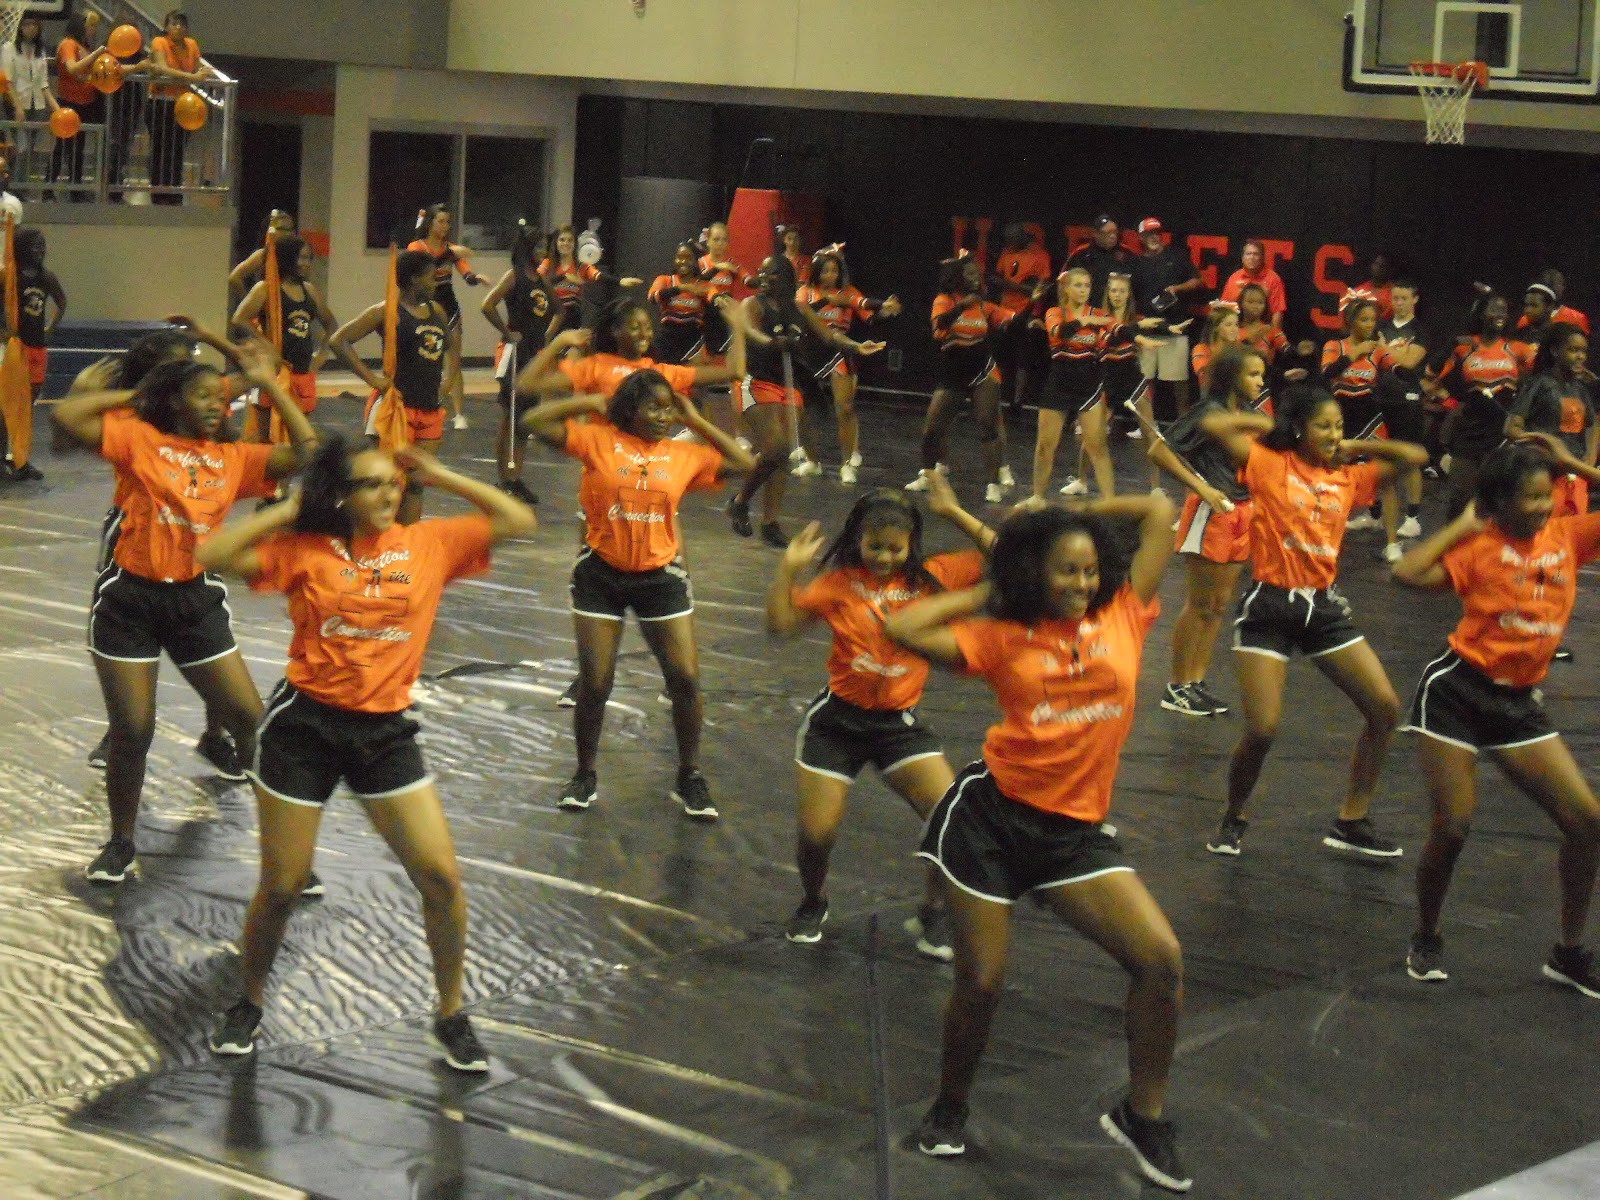 Awesome pep rally songs reanimators click for details awesome pep